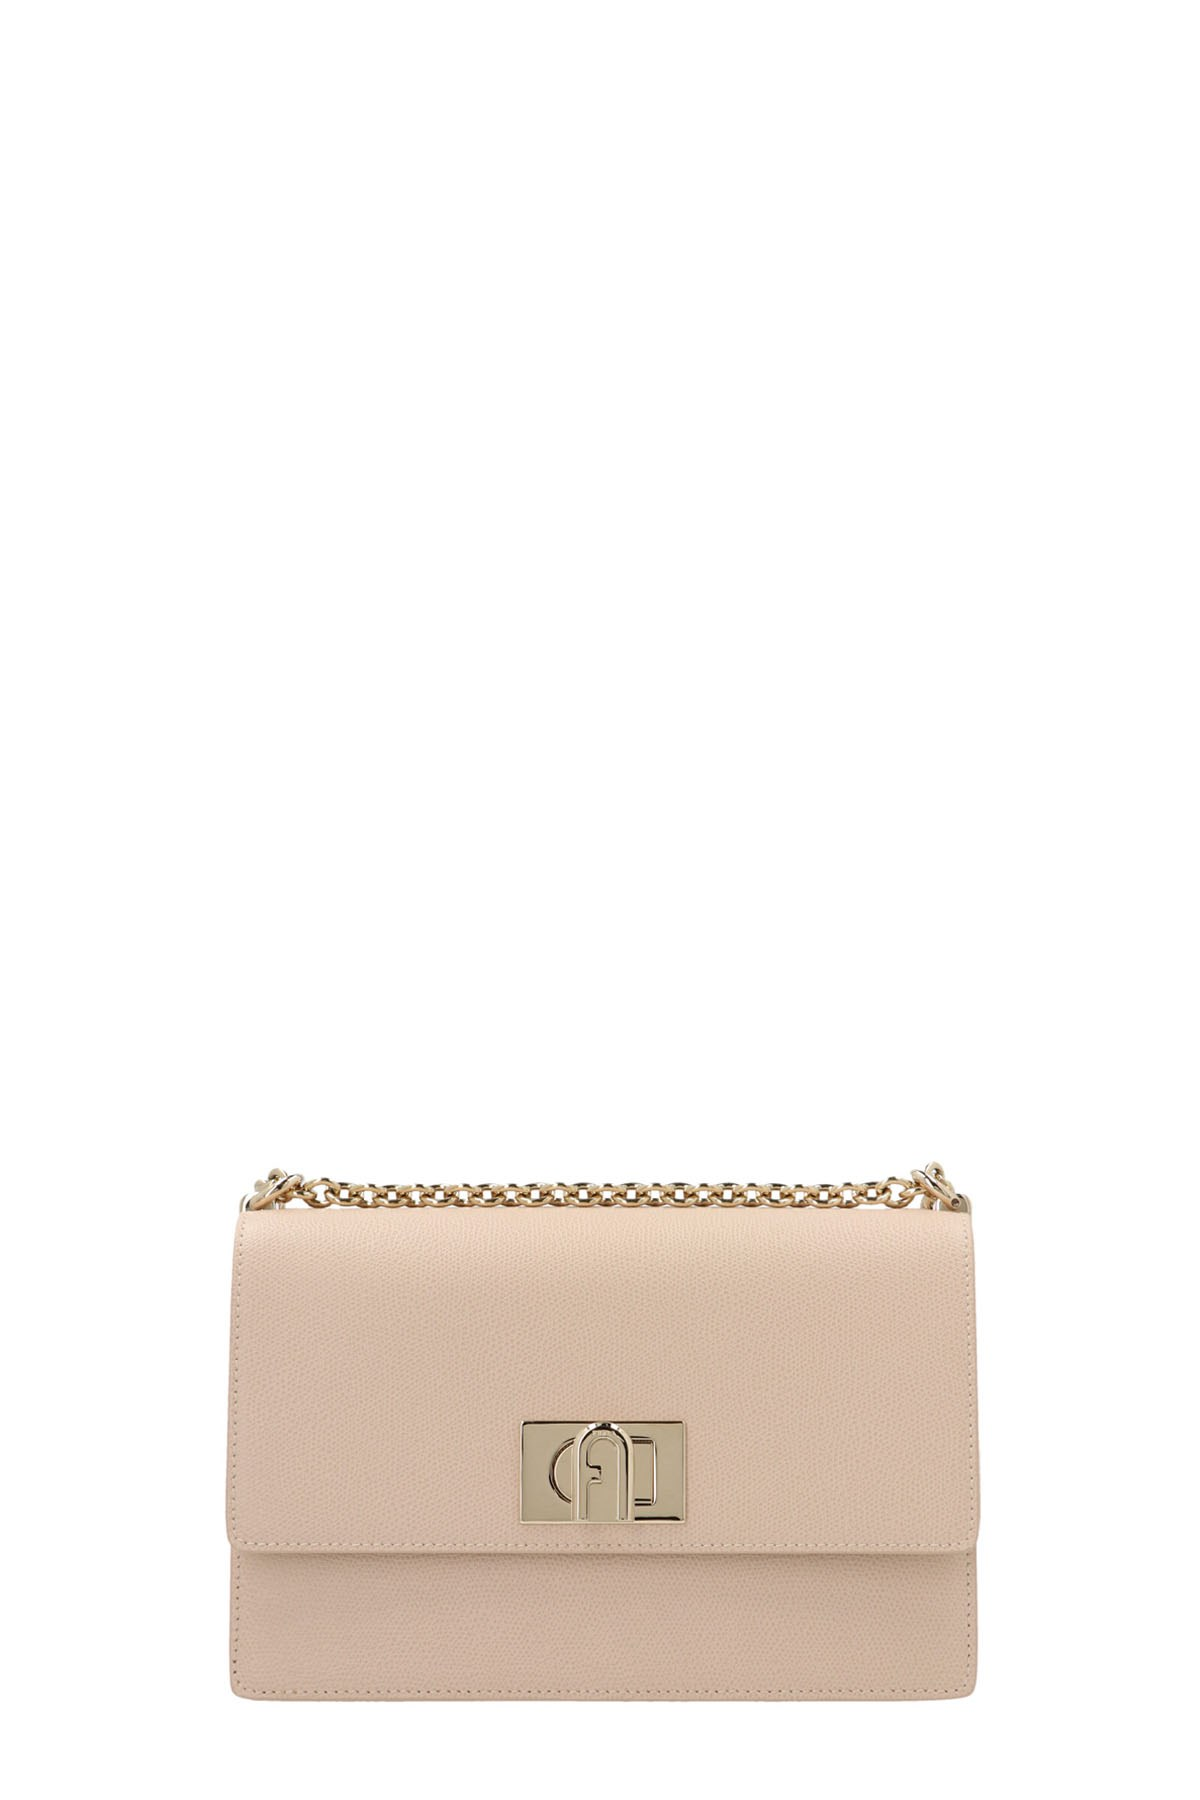 FURLA 'Furla 1927' Crossbody Bag from FURLA